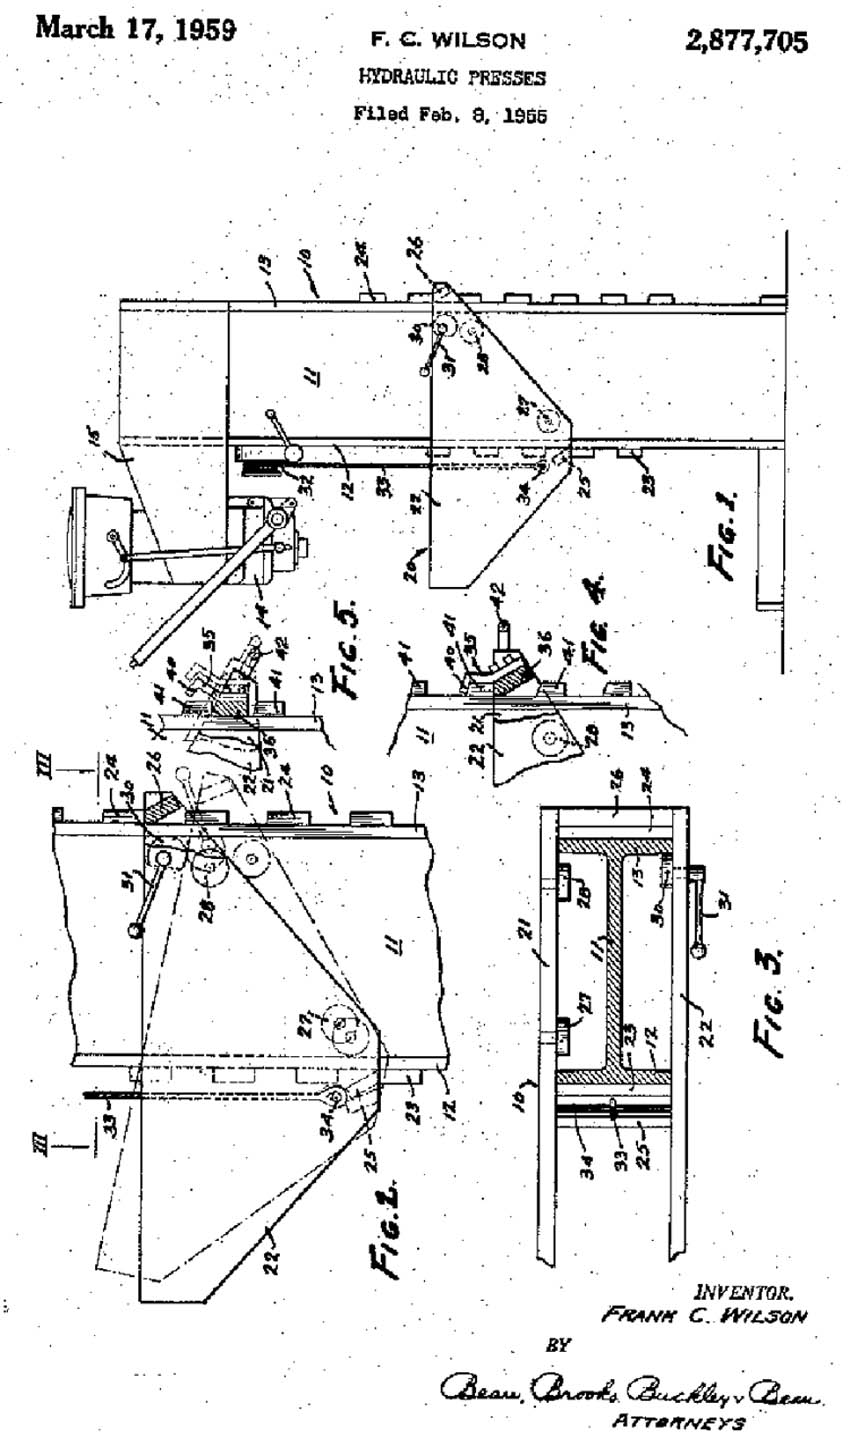 hight resolution of can t help with your decision but here is a 1959 patent drawing assigned to k r wilson for a hydraulic press the table tilts to move it up or down with